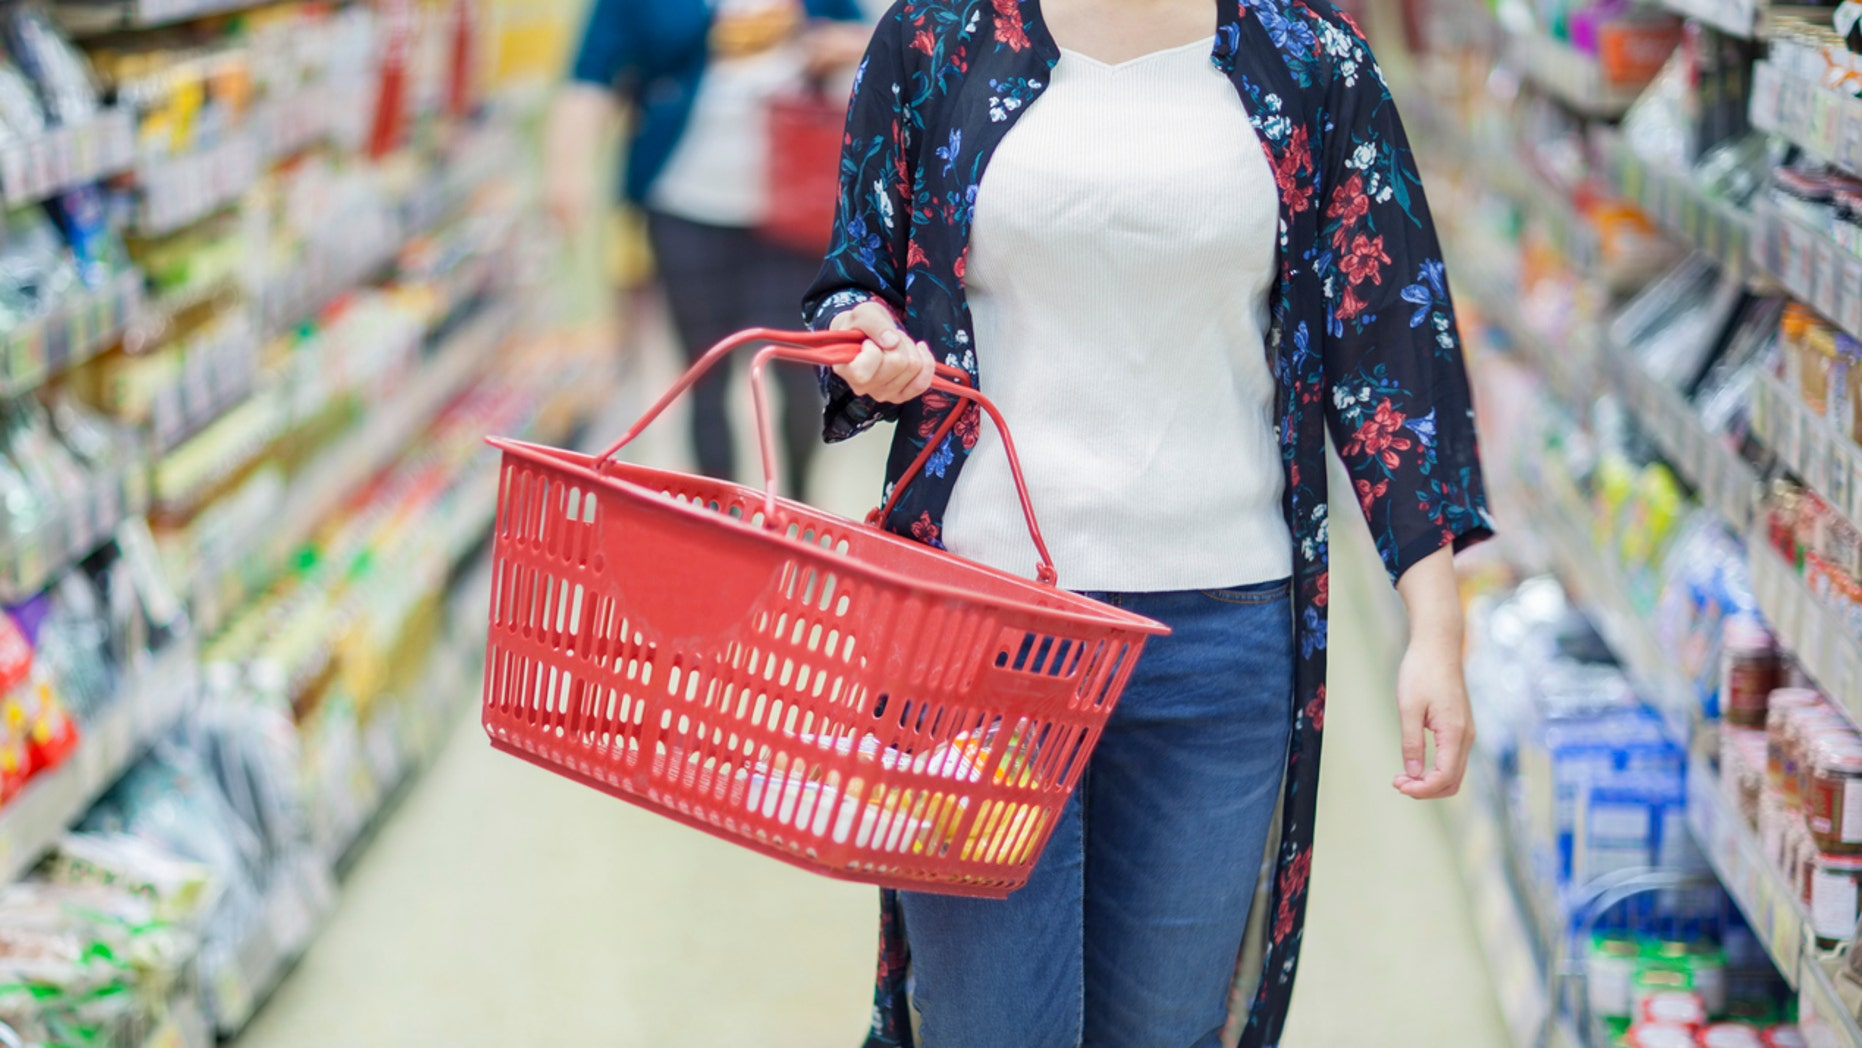 A young Japanese girl is shopping in a supermarket.